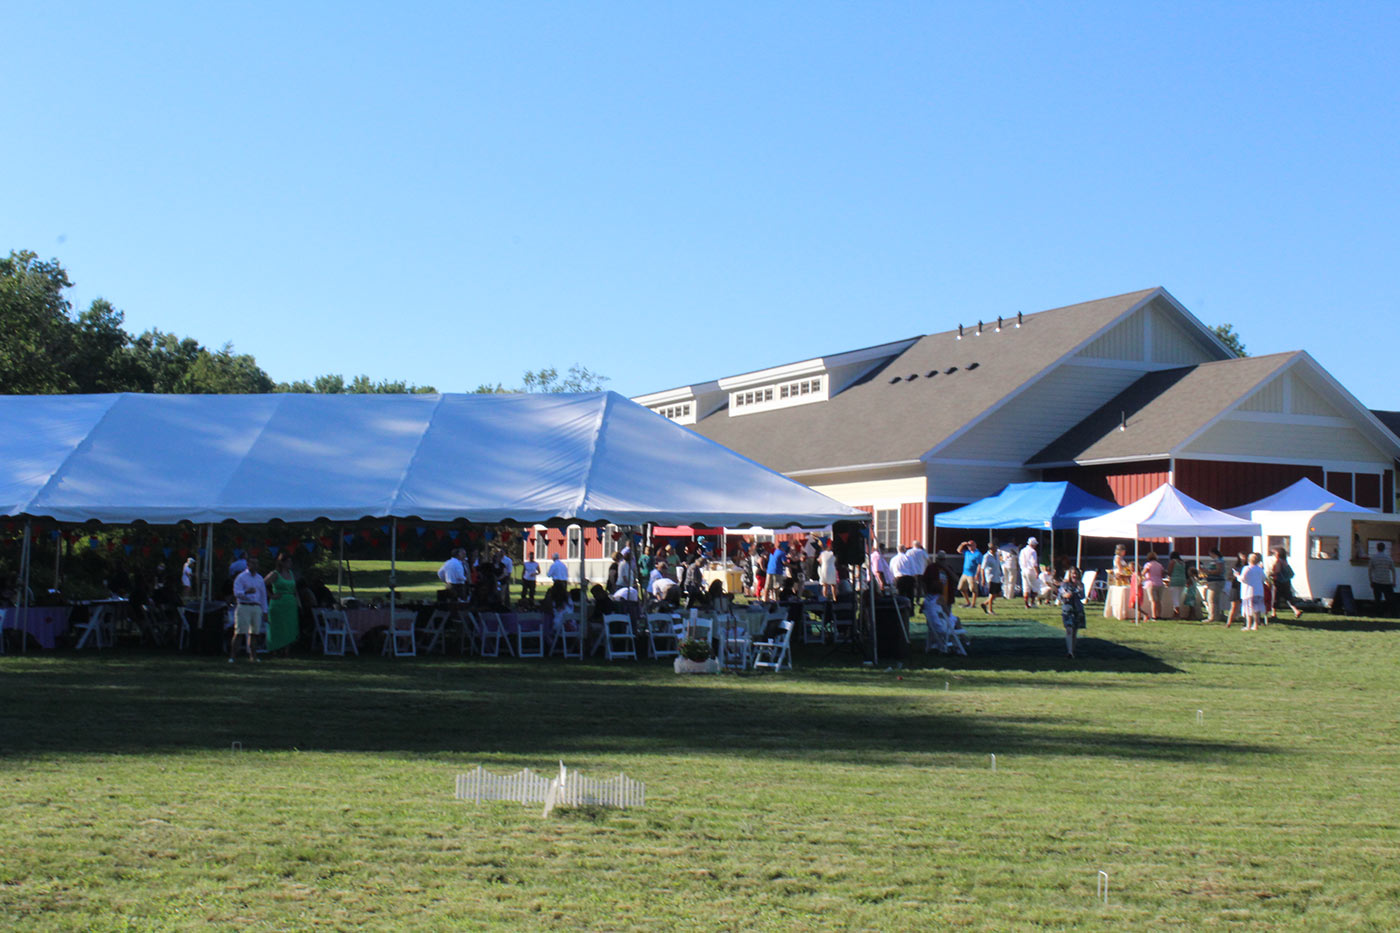 view of large tents at event